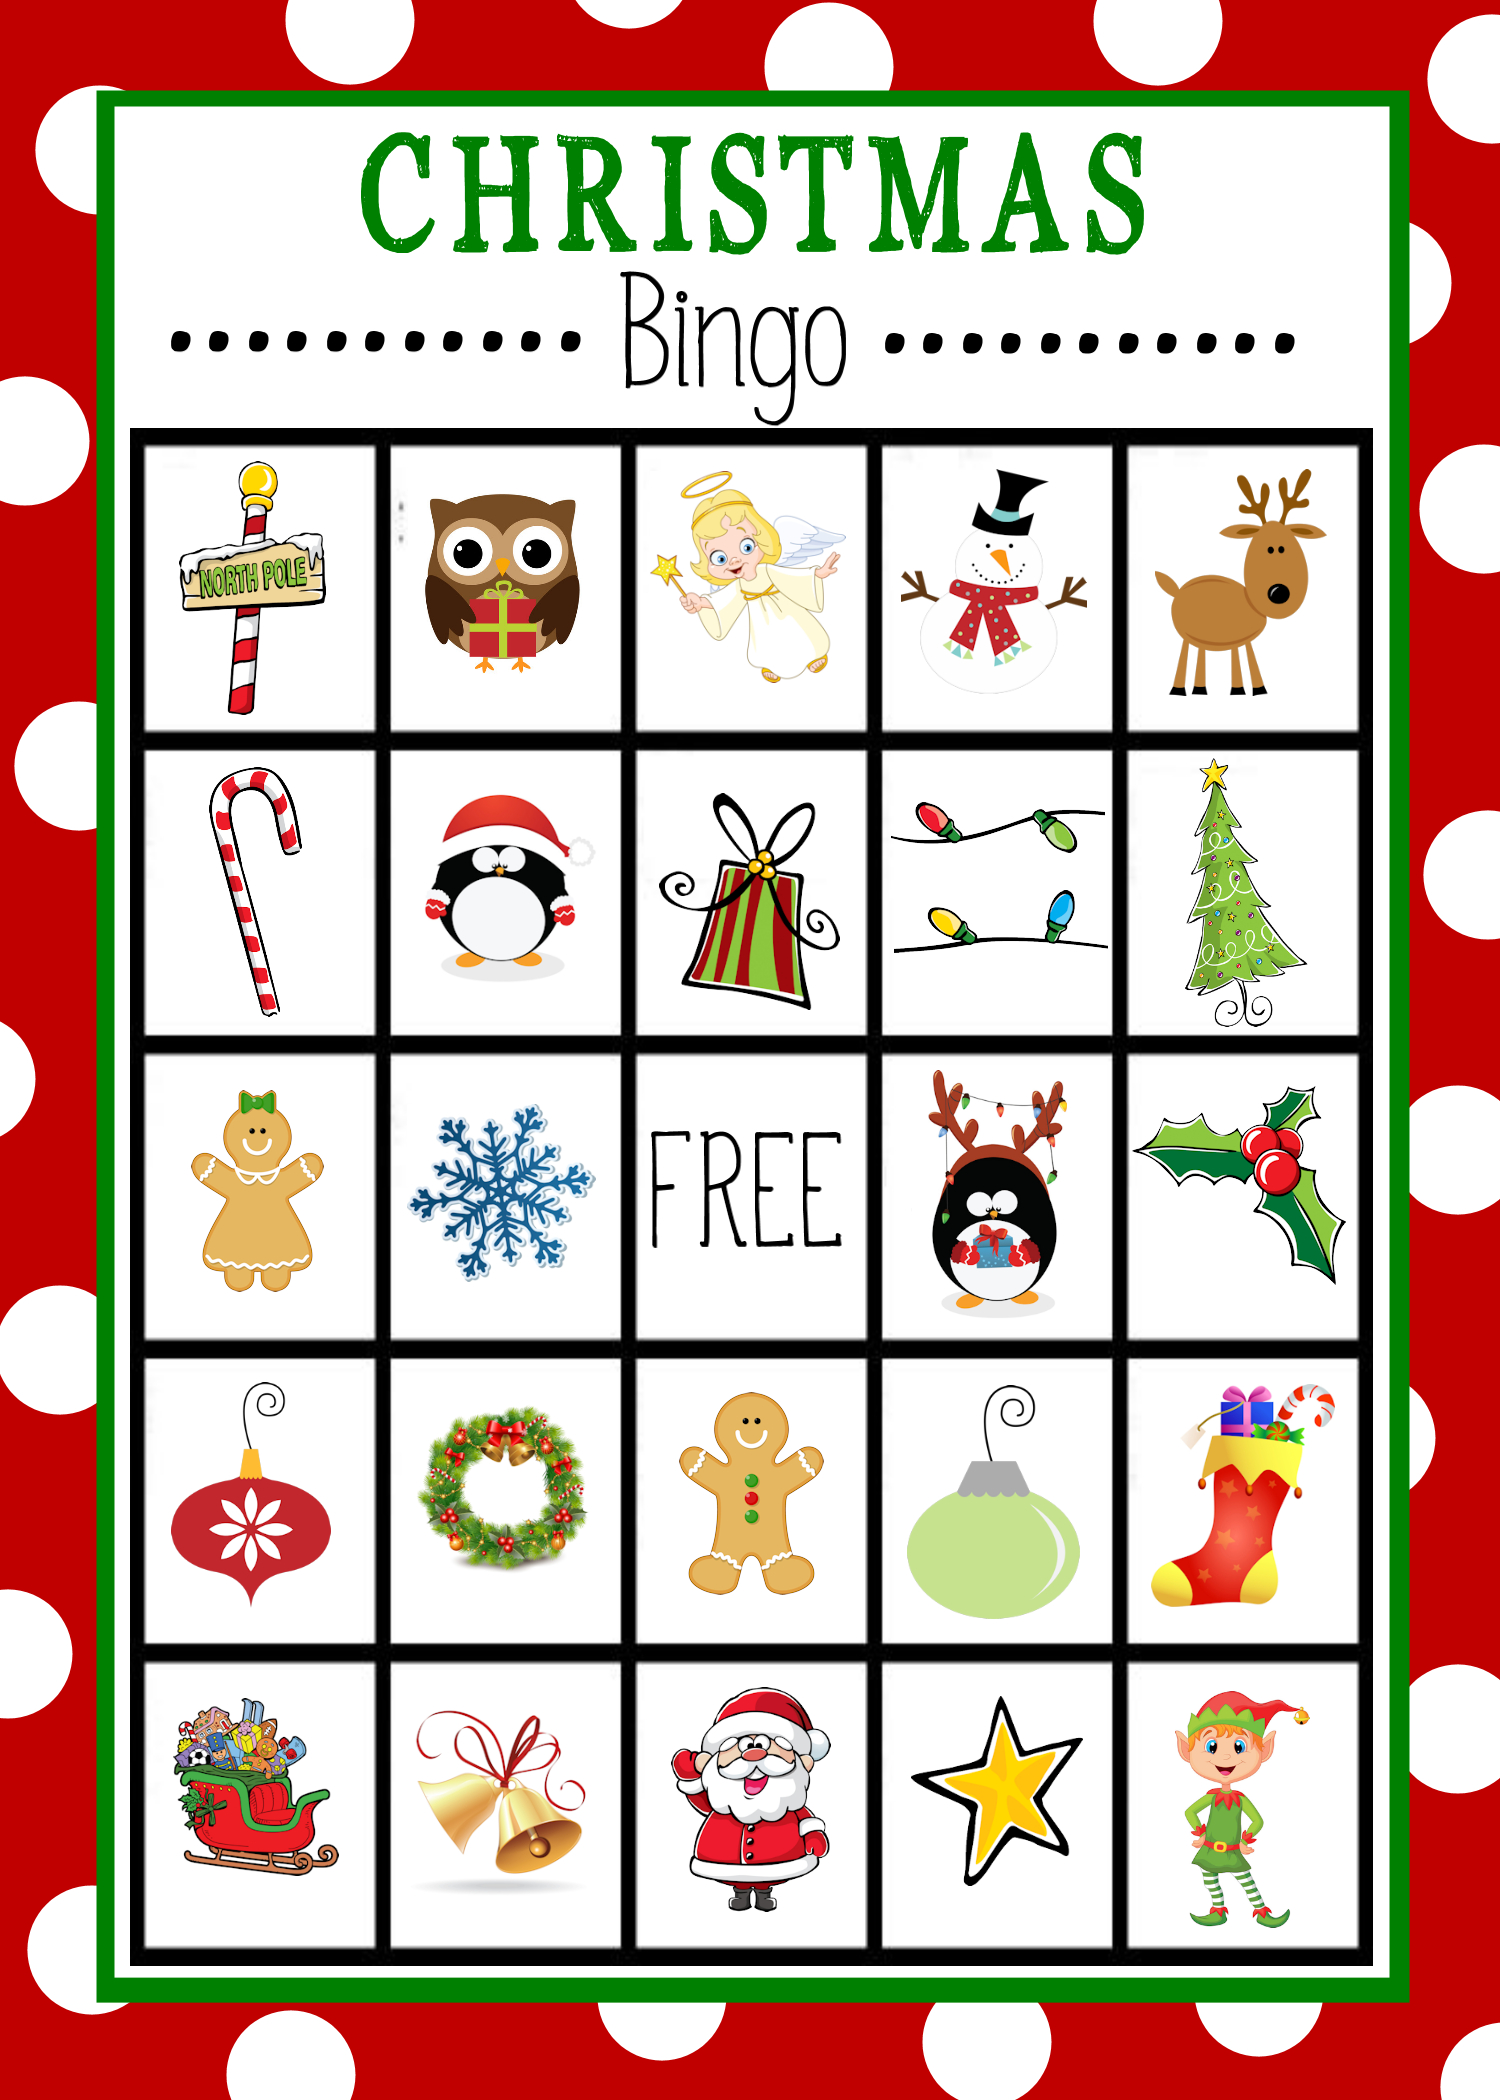 Free Printable Christmas Bingo Game | Christmas | Christmas Bingo - Free Printable Christmas Bingo Cards